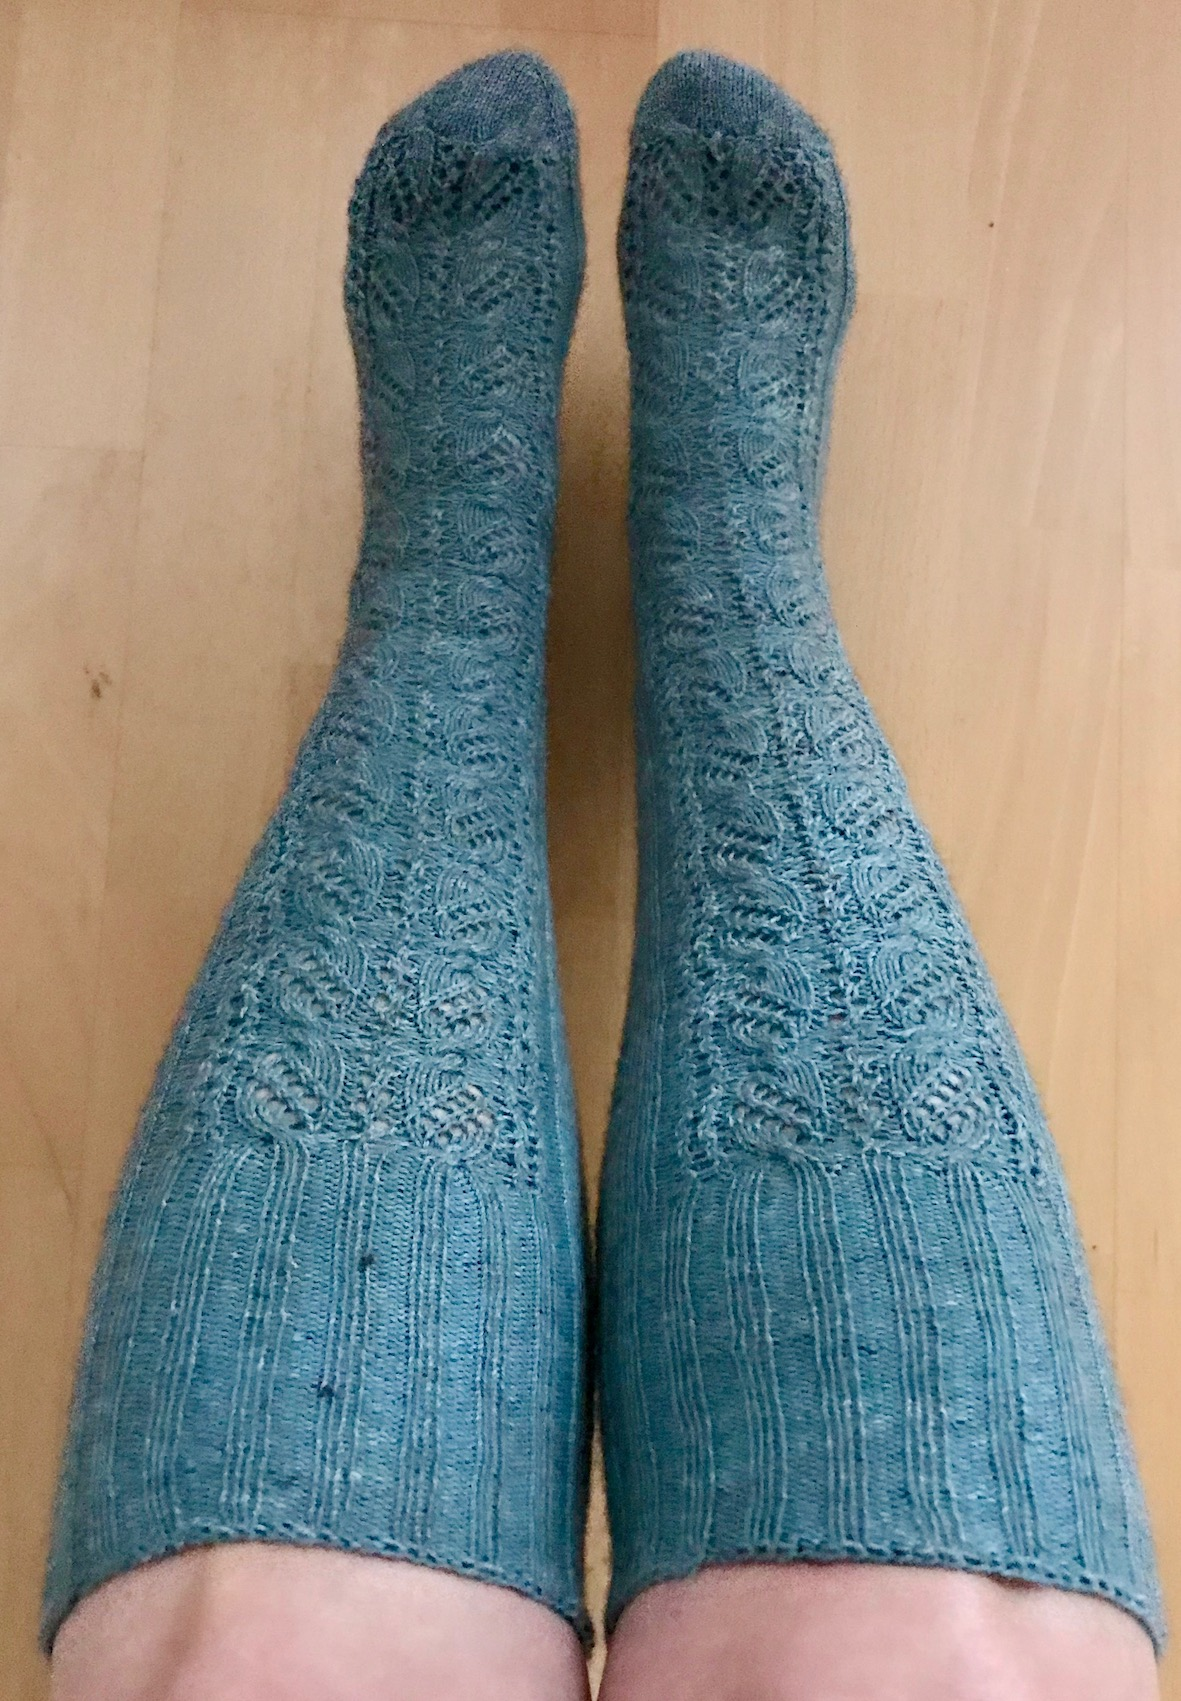 Knitted knee-high socks on bigger calves to show size inclusion